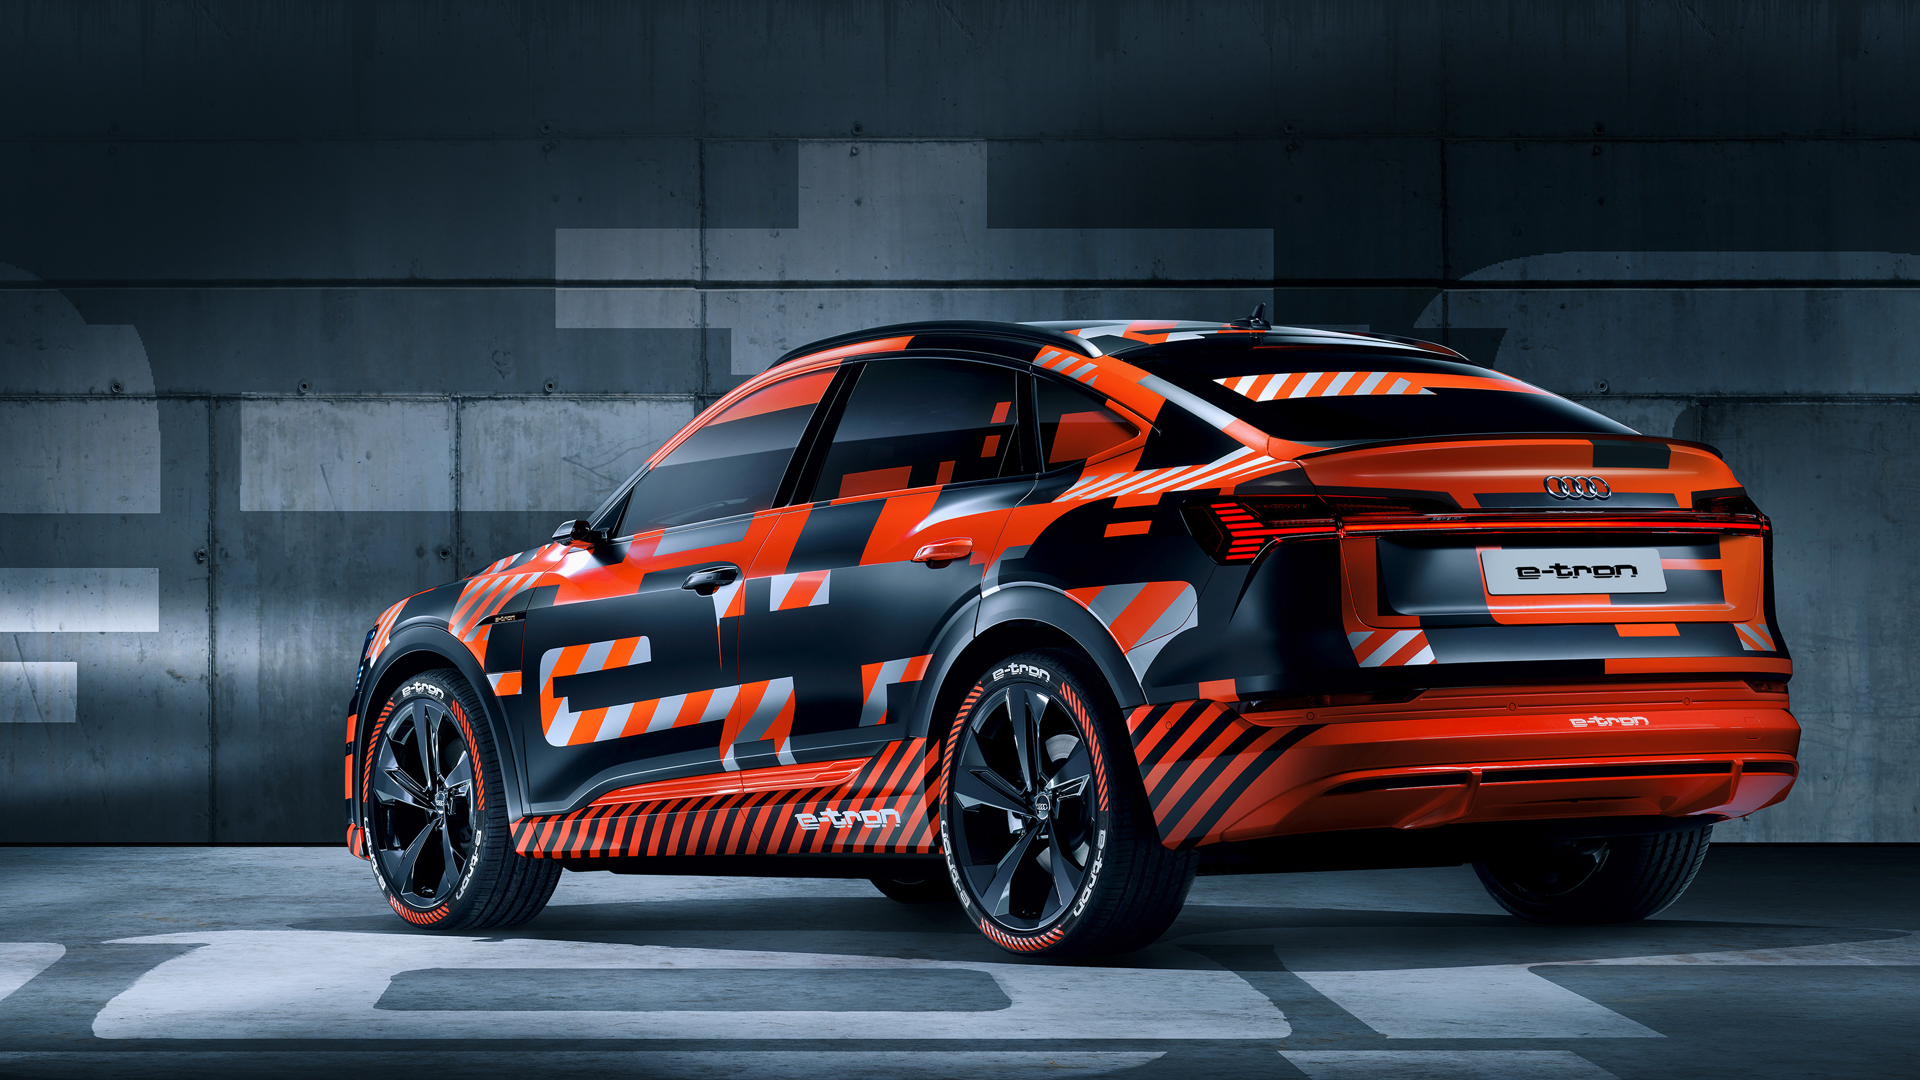 World premiere of the Audi e-tron Sportback